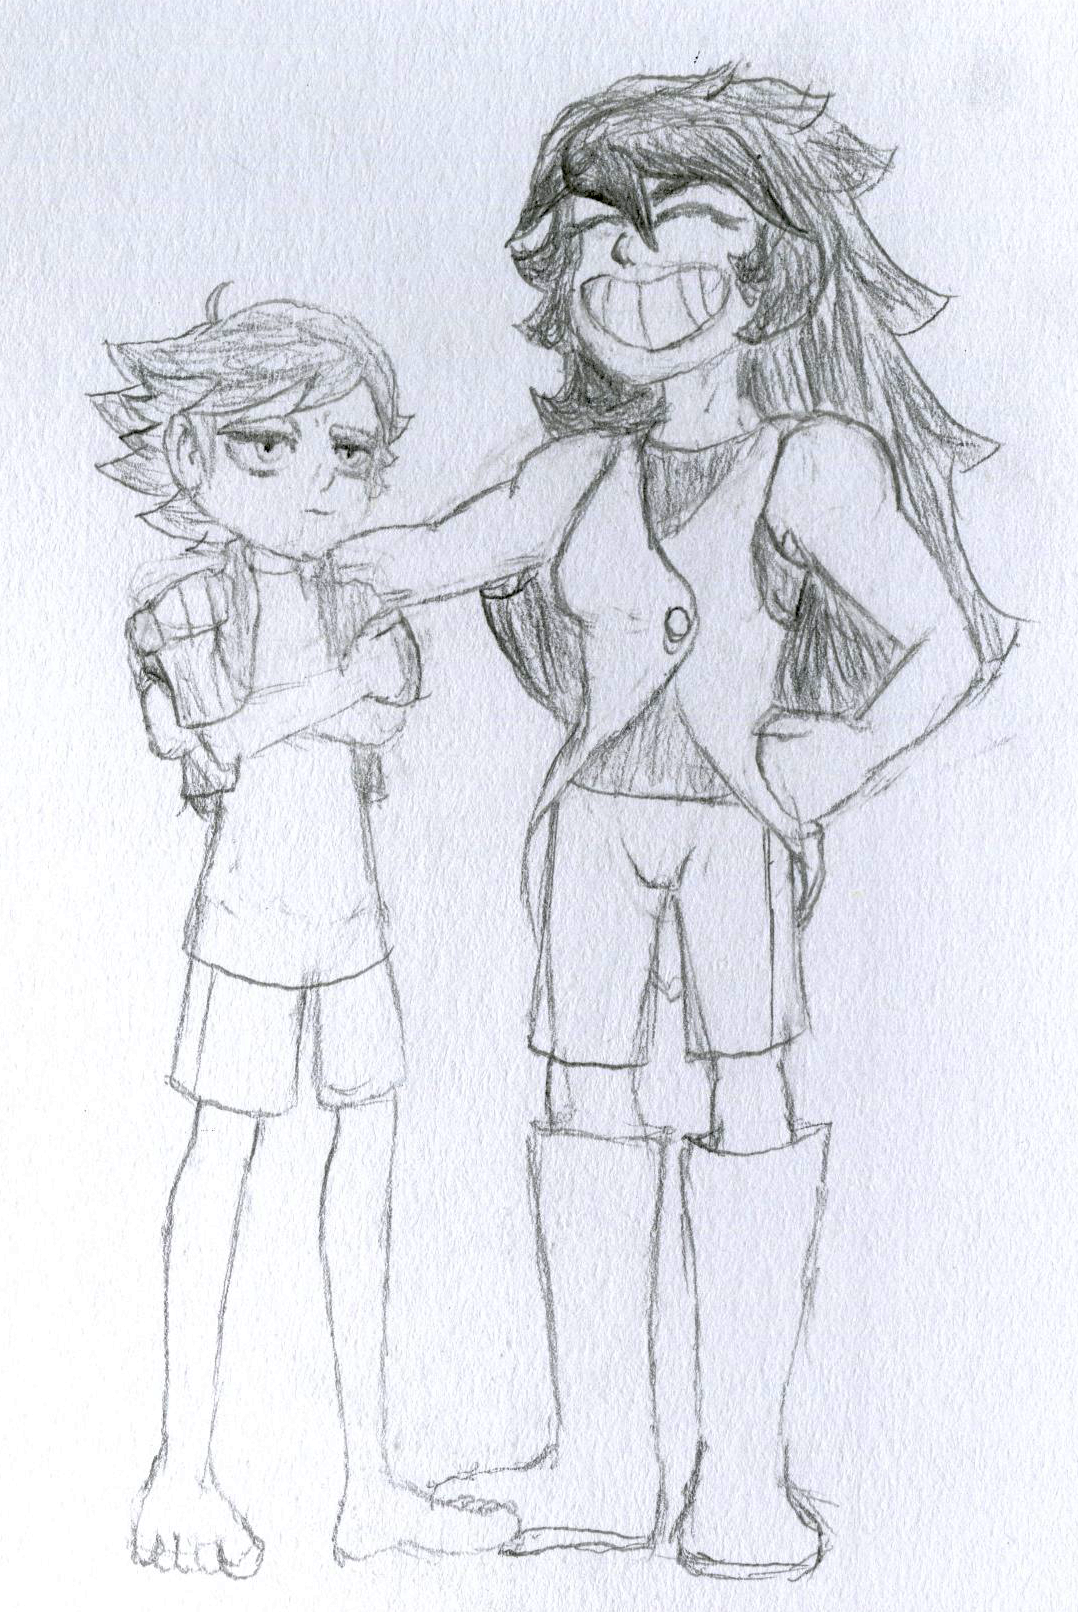 Fortis and Sola sketch